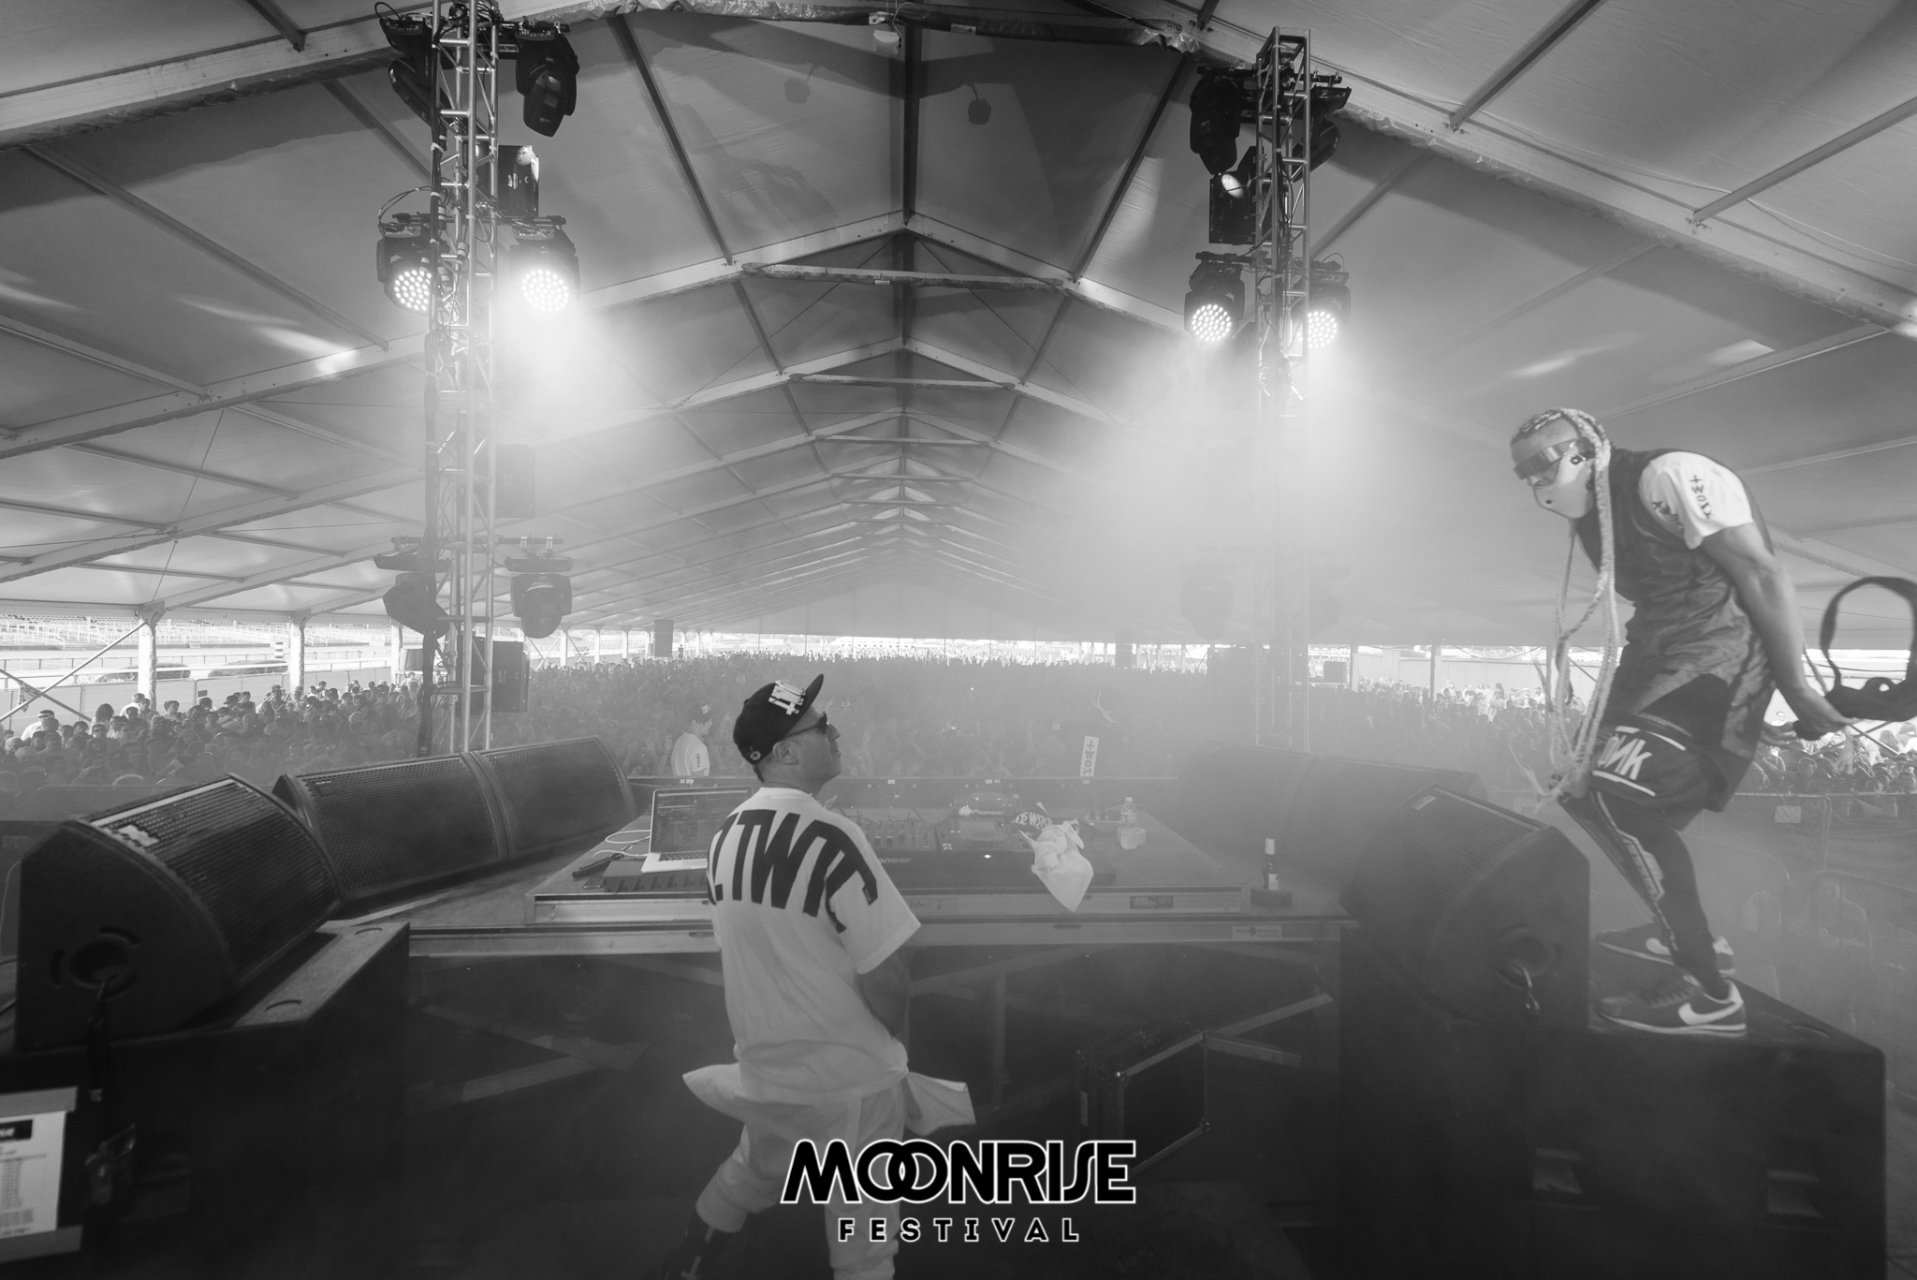 Moonrise_day2-67